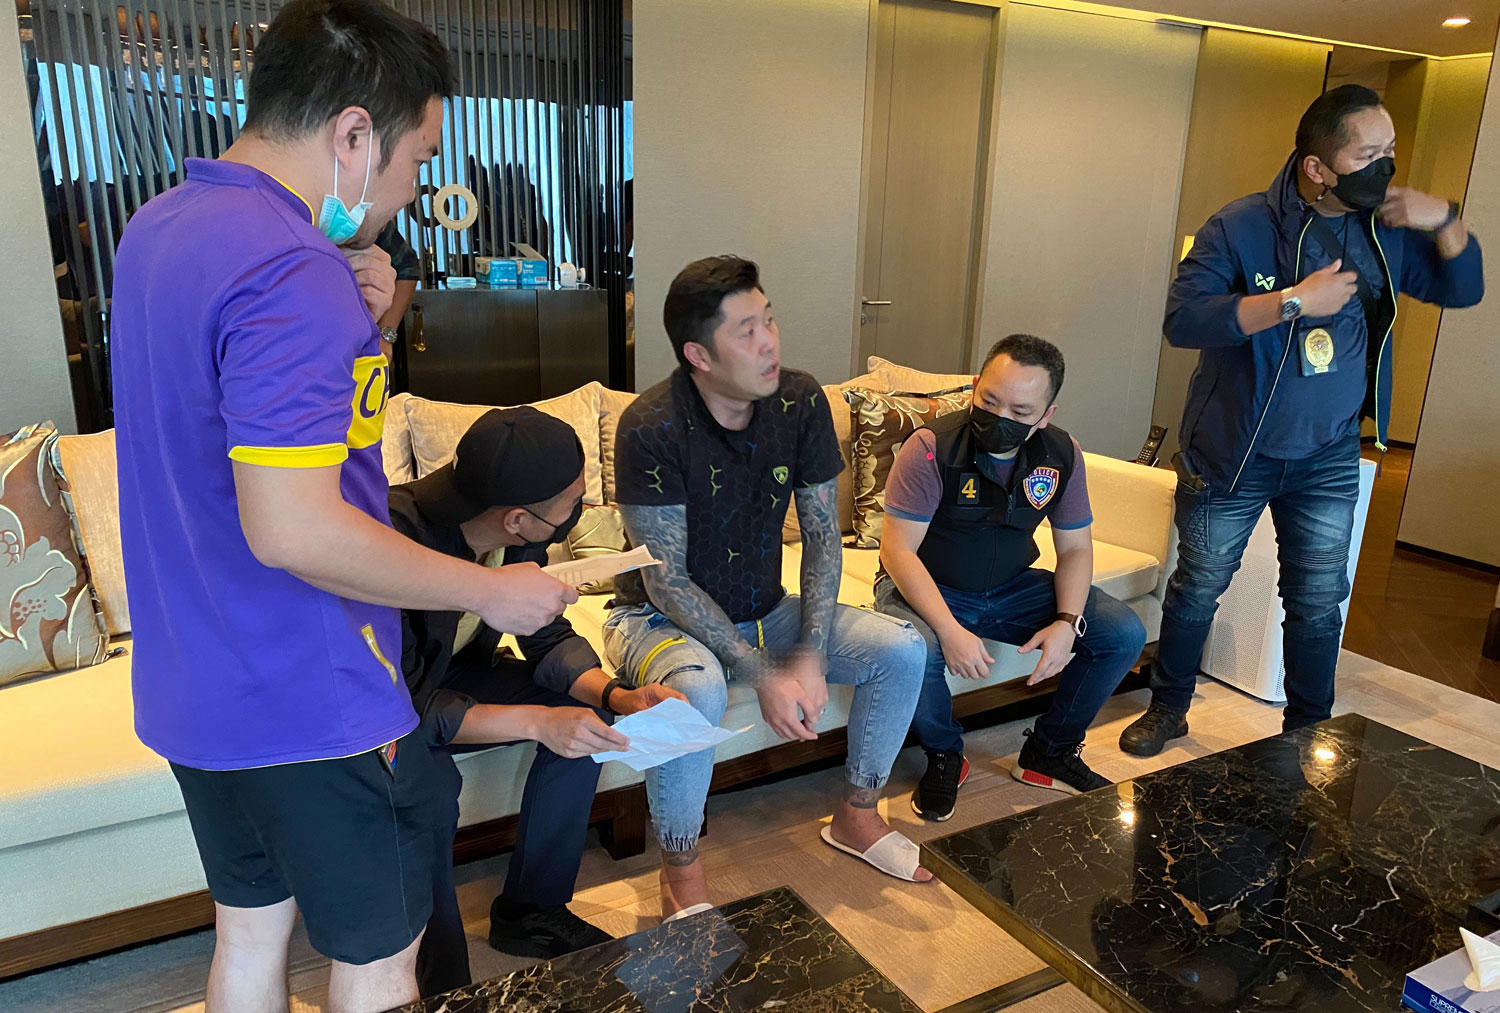 Plainclothes officers question Shuichi Ozawa, 42, for his alleged involvement in a 3-million-baht rubber glove fraud at a hotel in the Phloenchit area of Bangkok on Saturday evening. (Police photo)